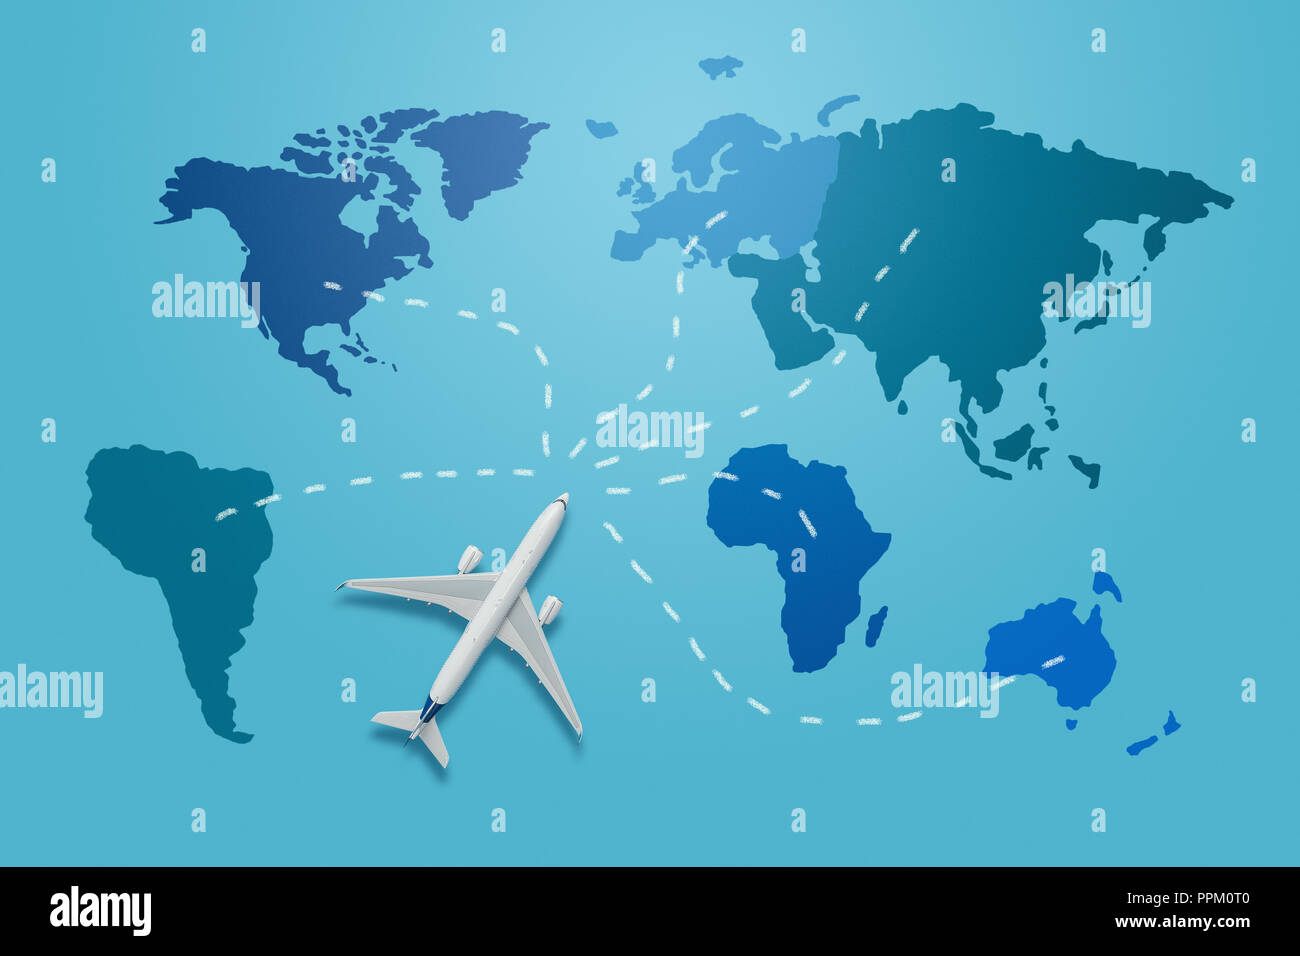 Travel Around The World Concept Small Plane Model On The Blue World